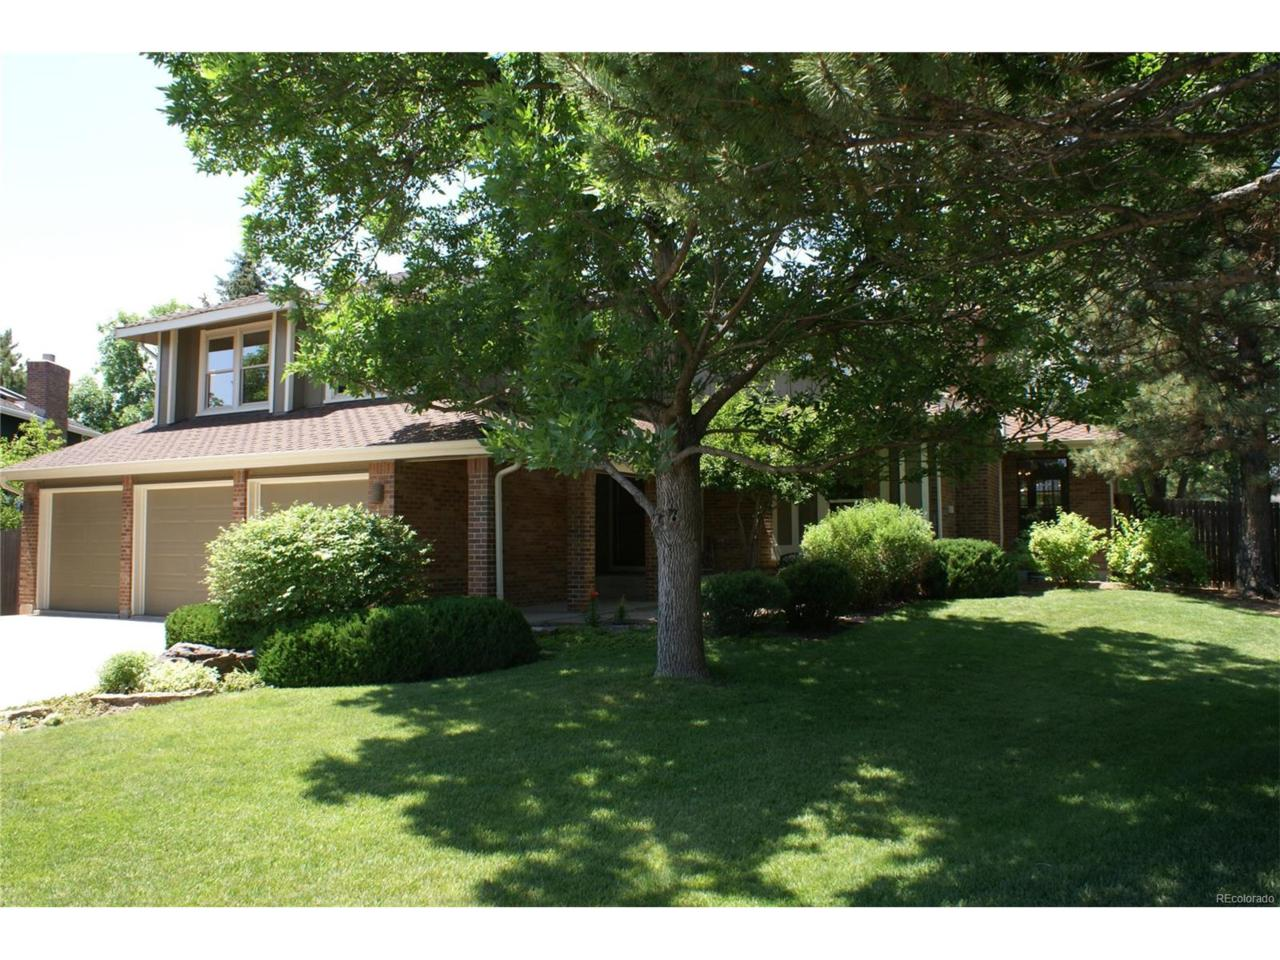 7359 Rochester Court, Castle Pines, CO 80108 (MLS #2717849) :: 8z Real Estate